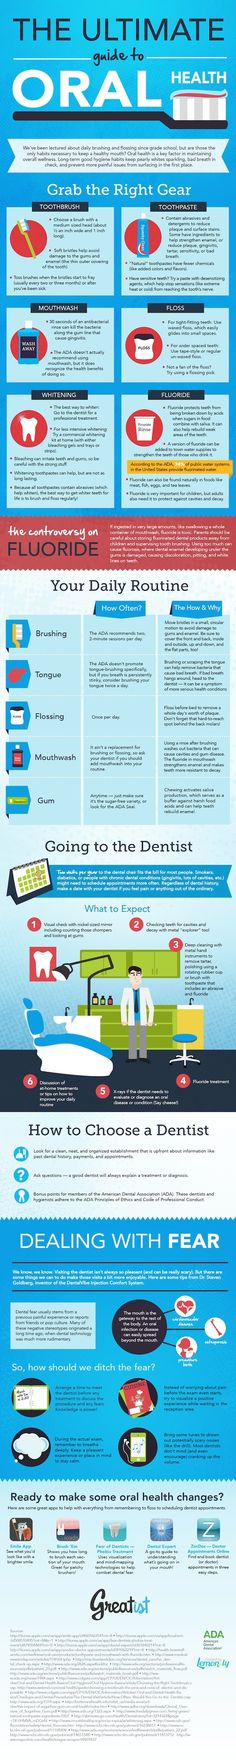 the ultimate guide to oral health  great guide  http://www.billdorfmandds.com for more oral health information